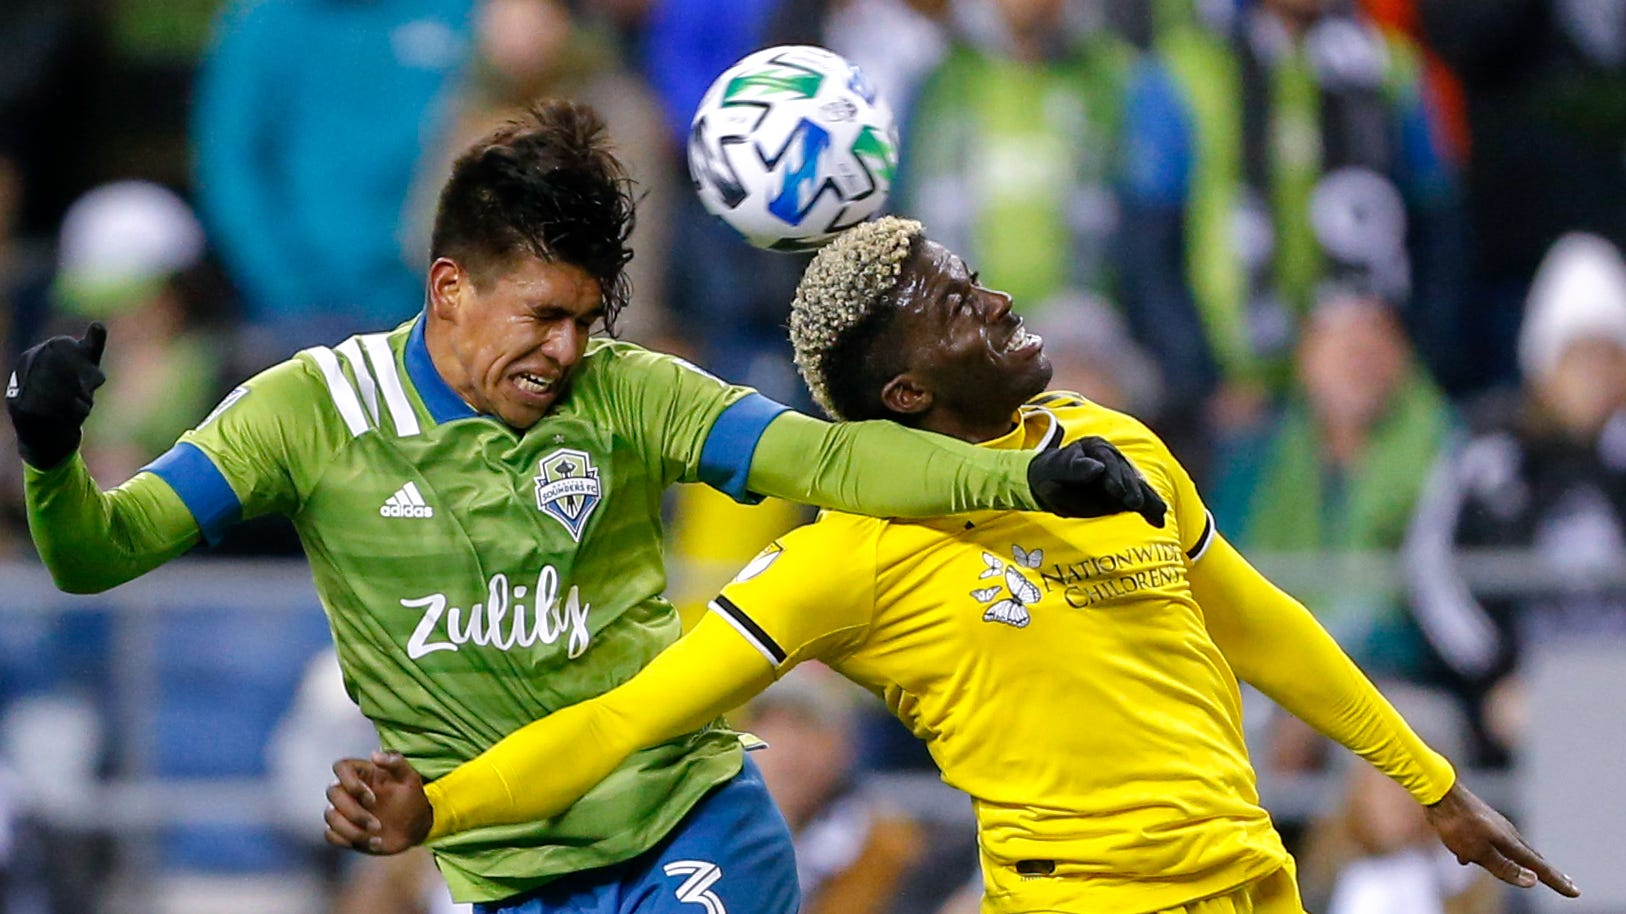 How to watch 2020 MLS Cup between Columbus Crew and Seattle Sounders: TV channel, live stream, start time